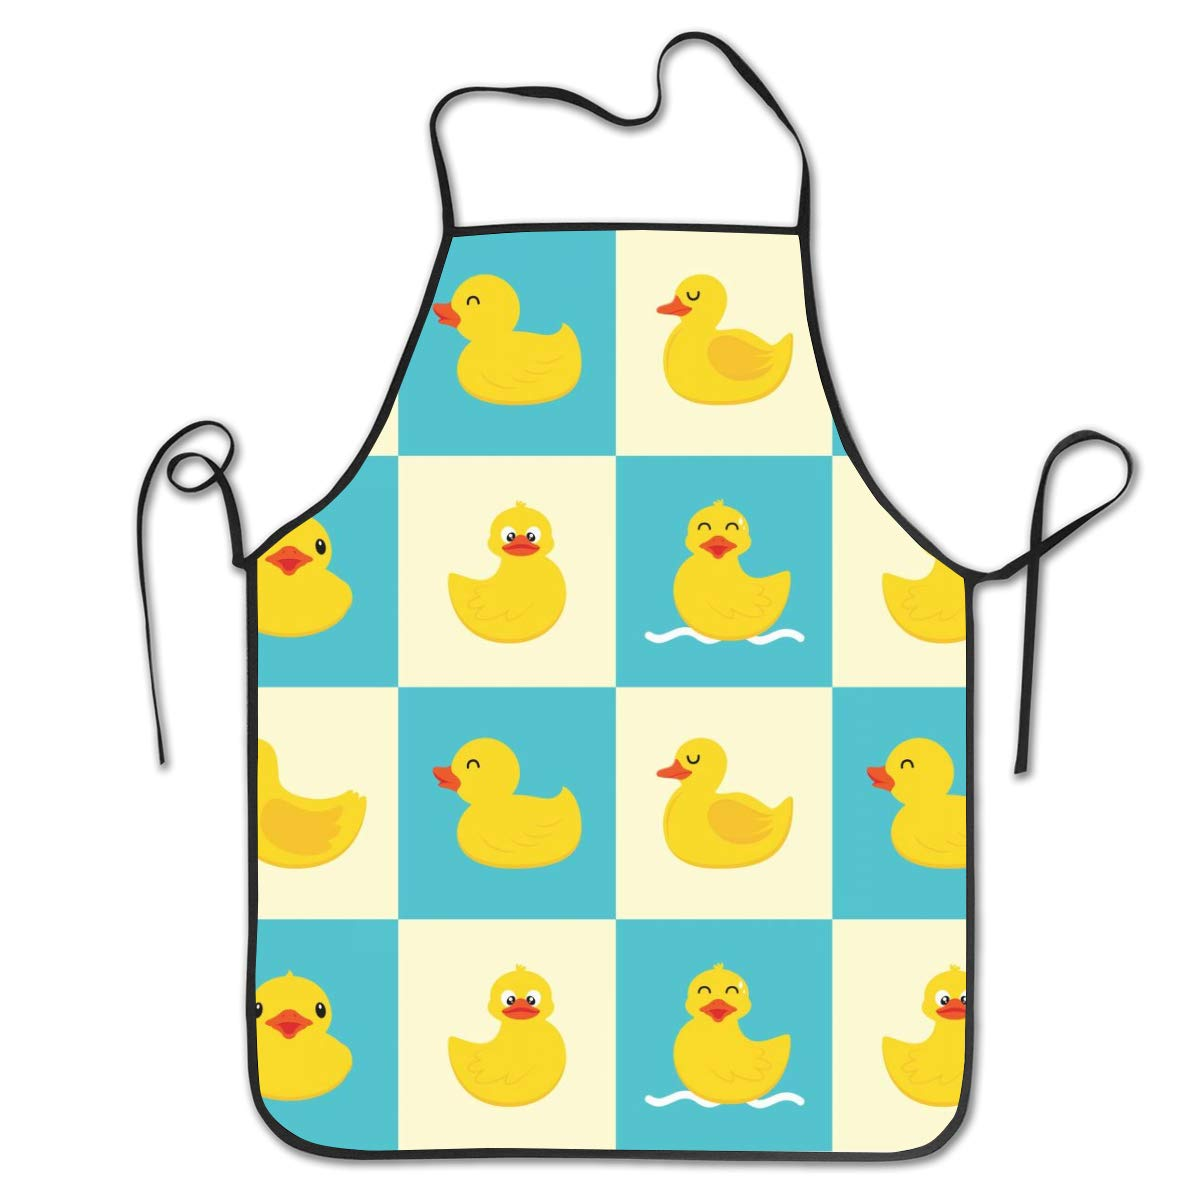 RsenTal Man and Woman Funny Cooking Barbecue Apron Adjustable Kitchen Chef Baking Barbecue Bib Providing for Baristas Chefs Hairdressers Painters and Gardeners Funny Rubber Duck